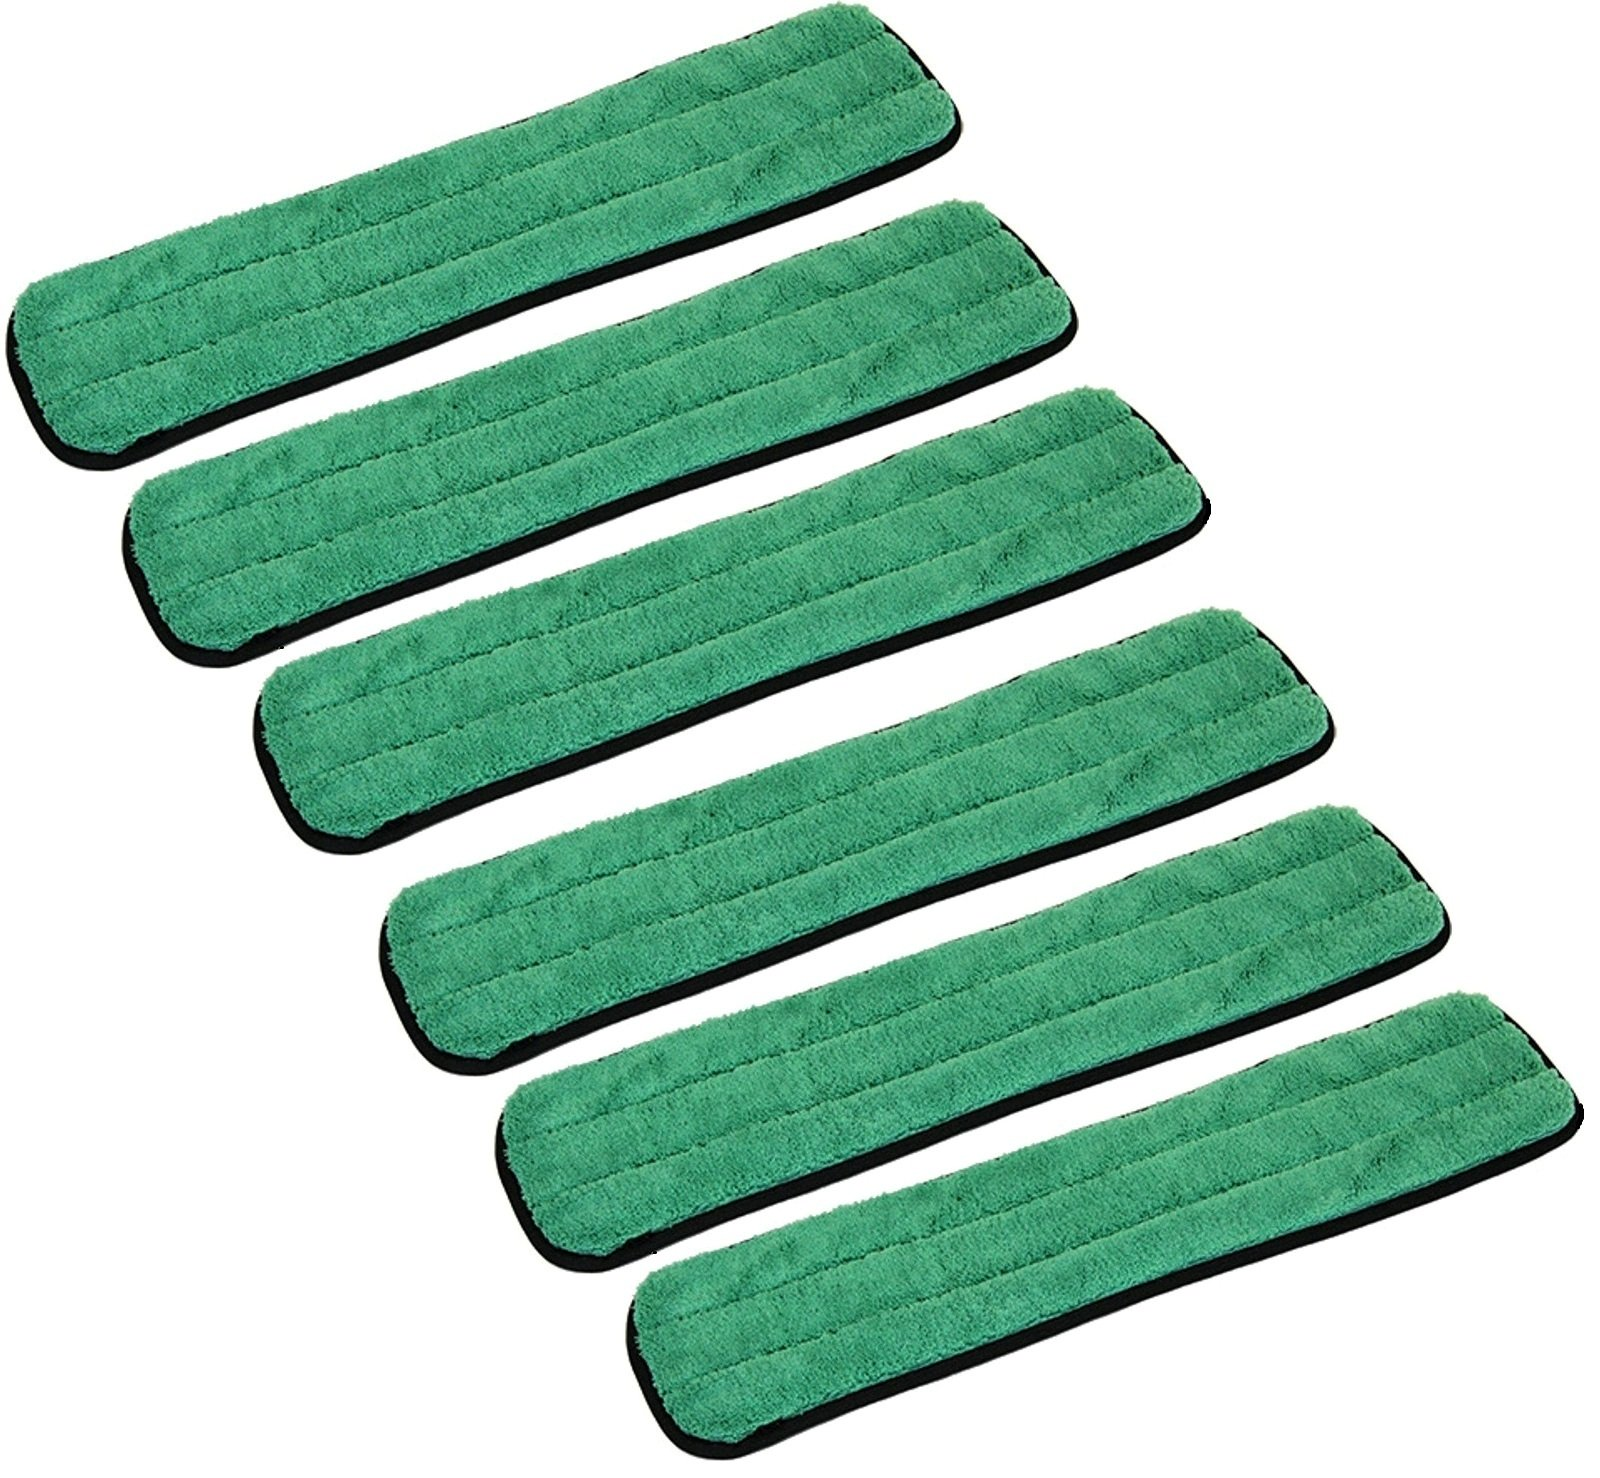 6 Pack of 24'' Industrial and Commercial Microfiber Dry Dusting Mop Pad for Flat Frames By Real Clean